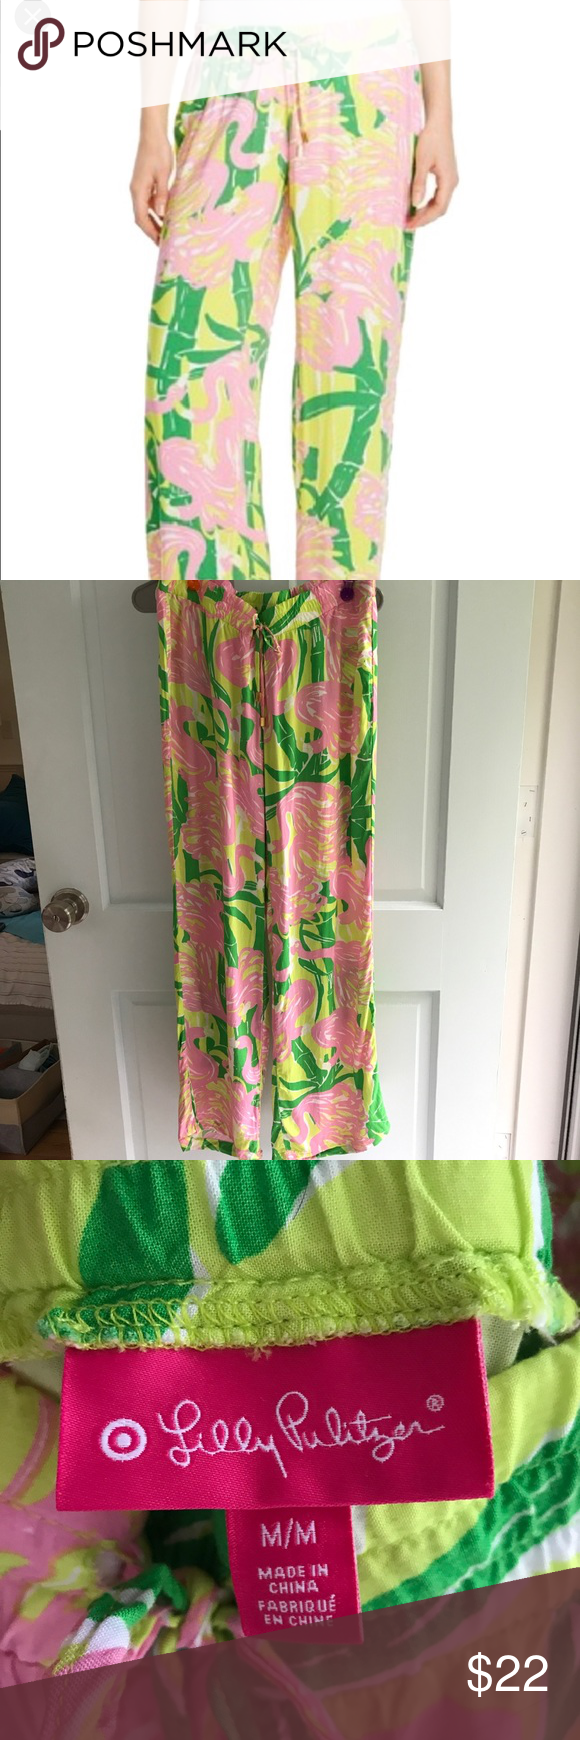 e0327b7aed4d5 Lilly Pulitzer for Target Pants Super comfortable hardly worn (no more than  3x) Lilly